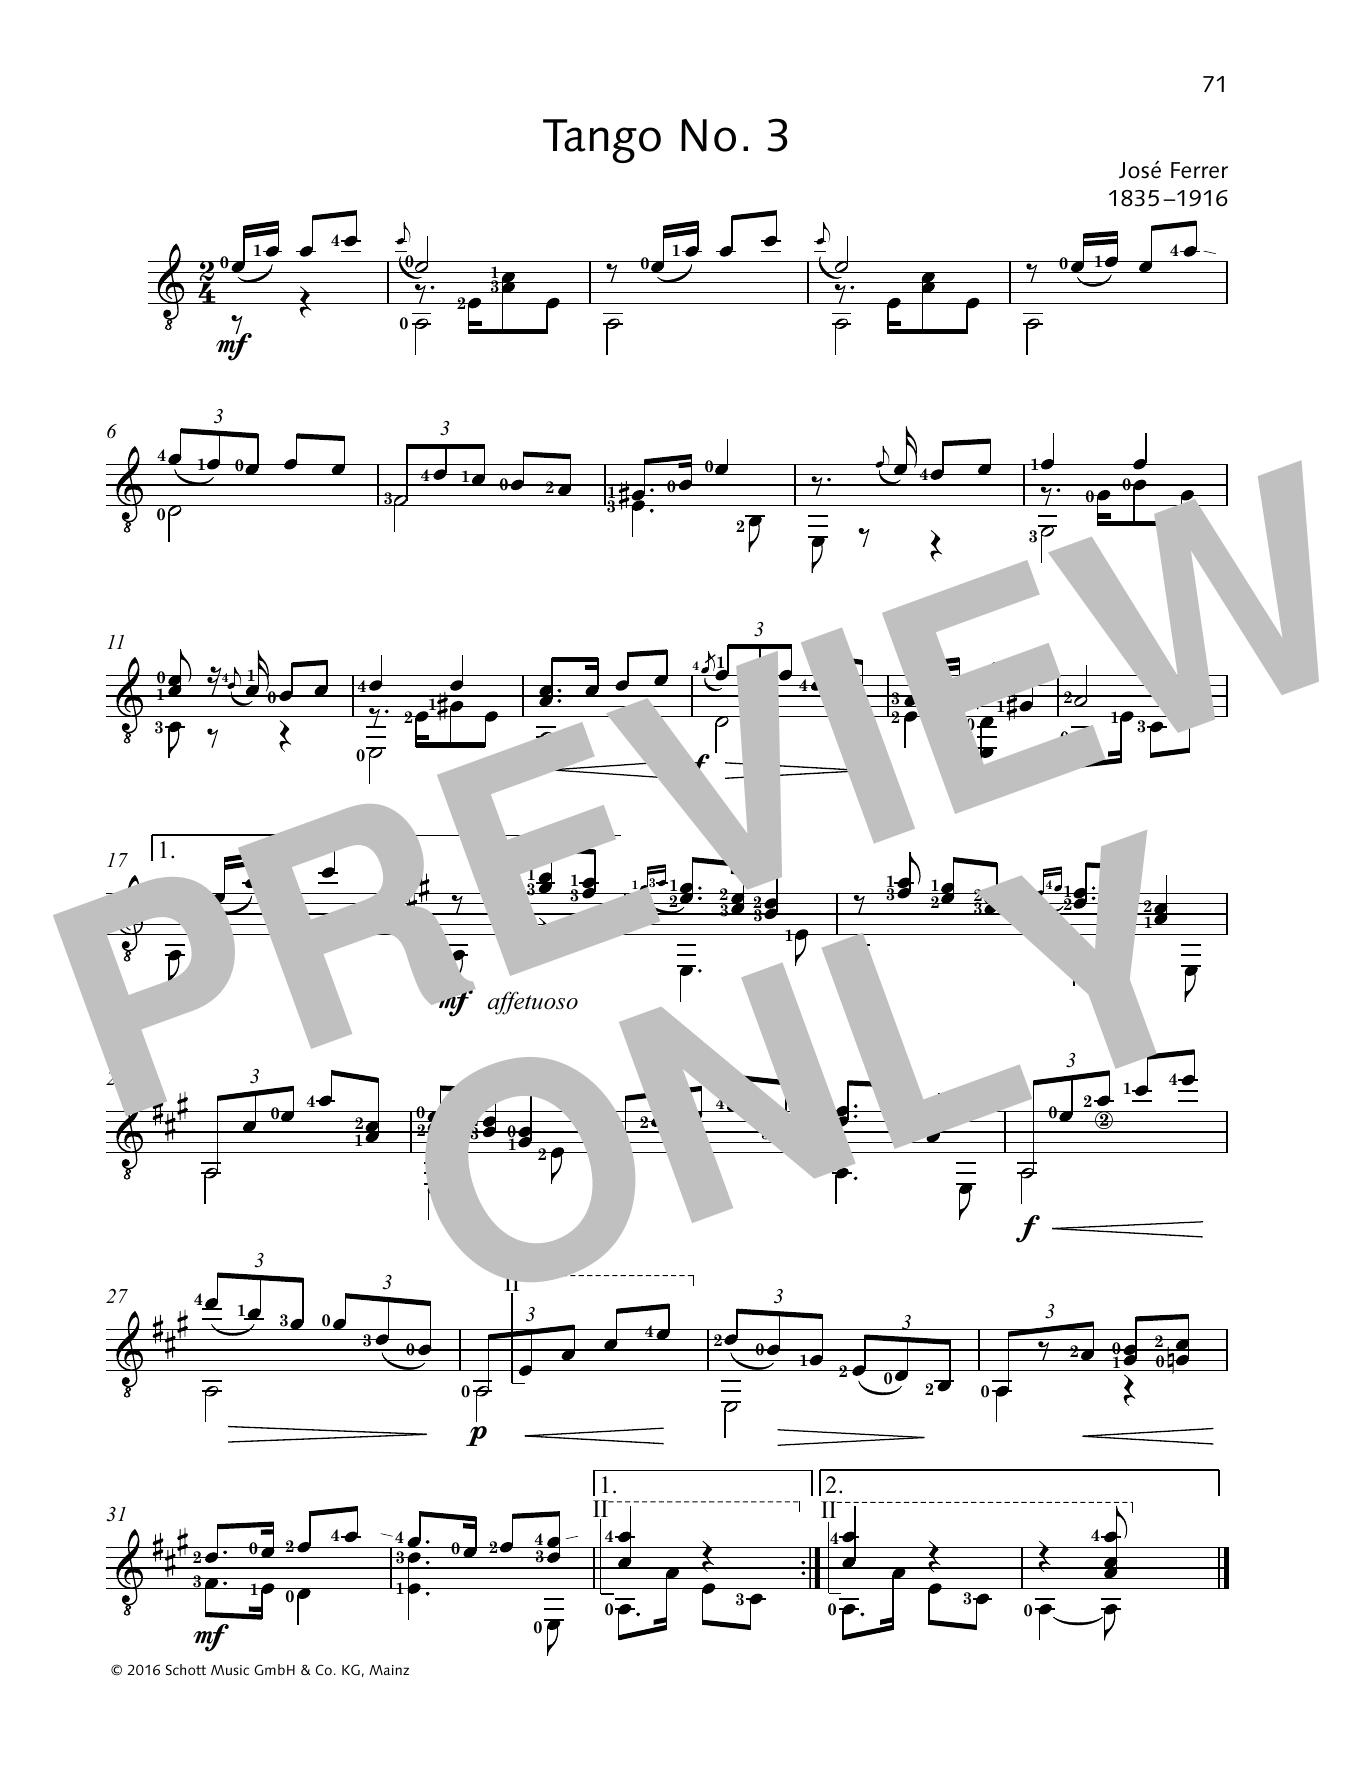 Jose Ferrer Tango No. 3 sheet music preview music notes and score for Solo Guitar Tab including 1 page(s)